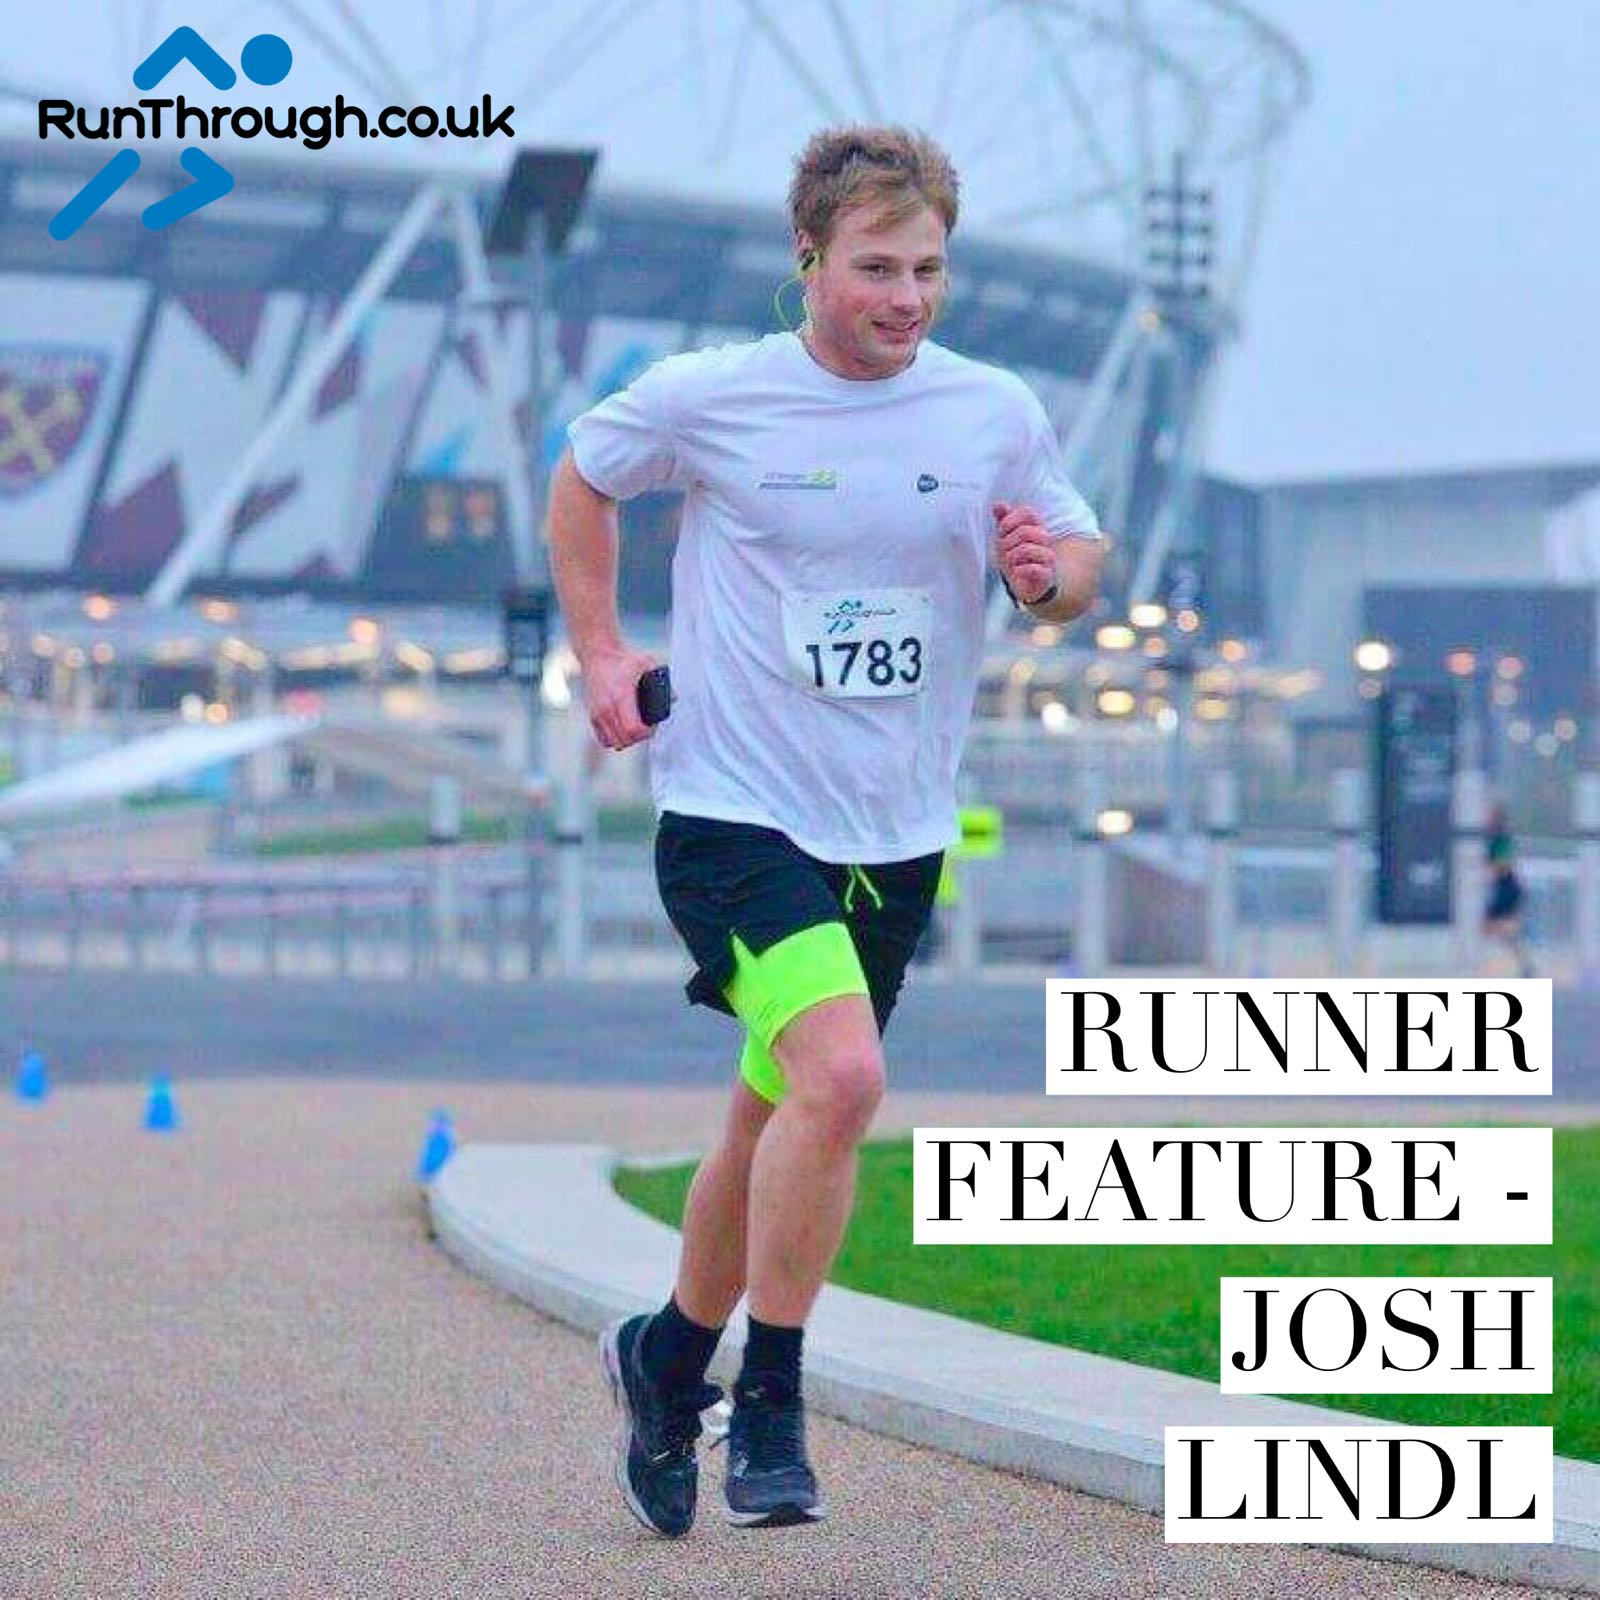 Runner Feature – Josh Lindl